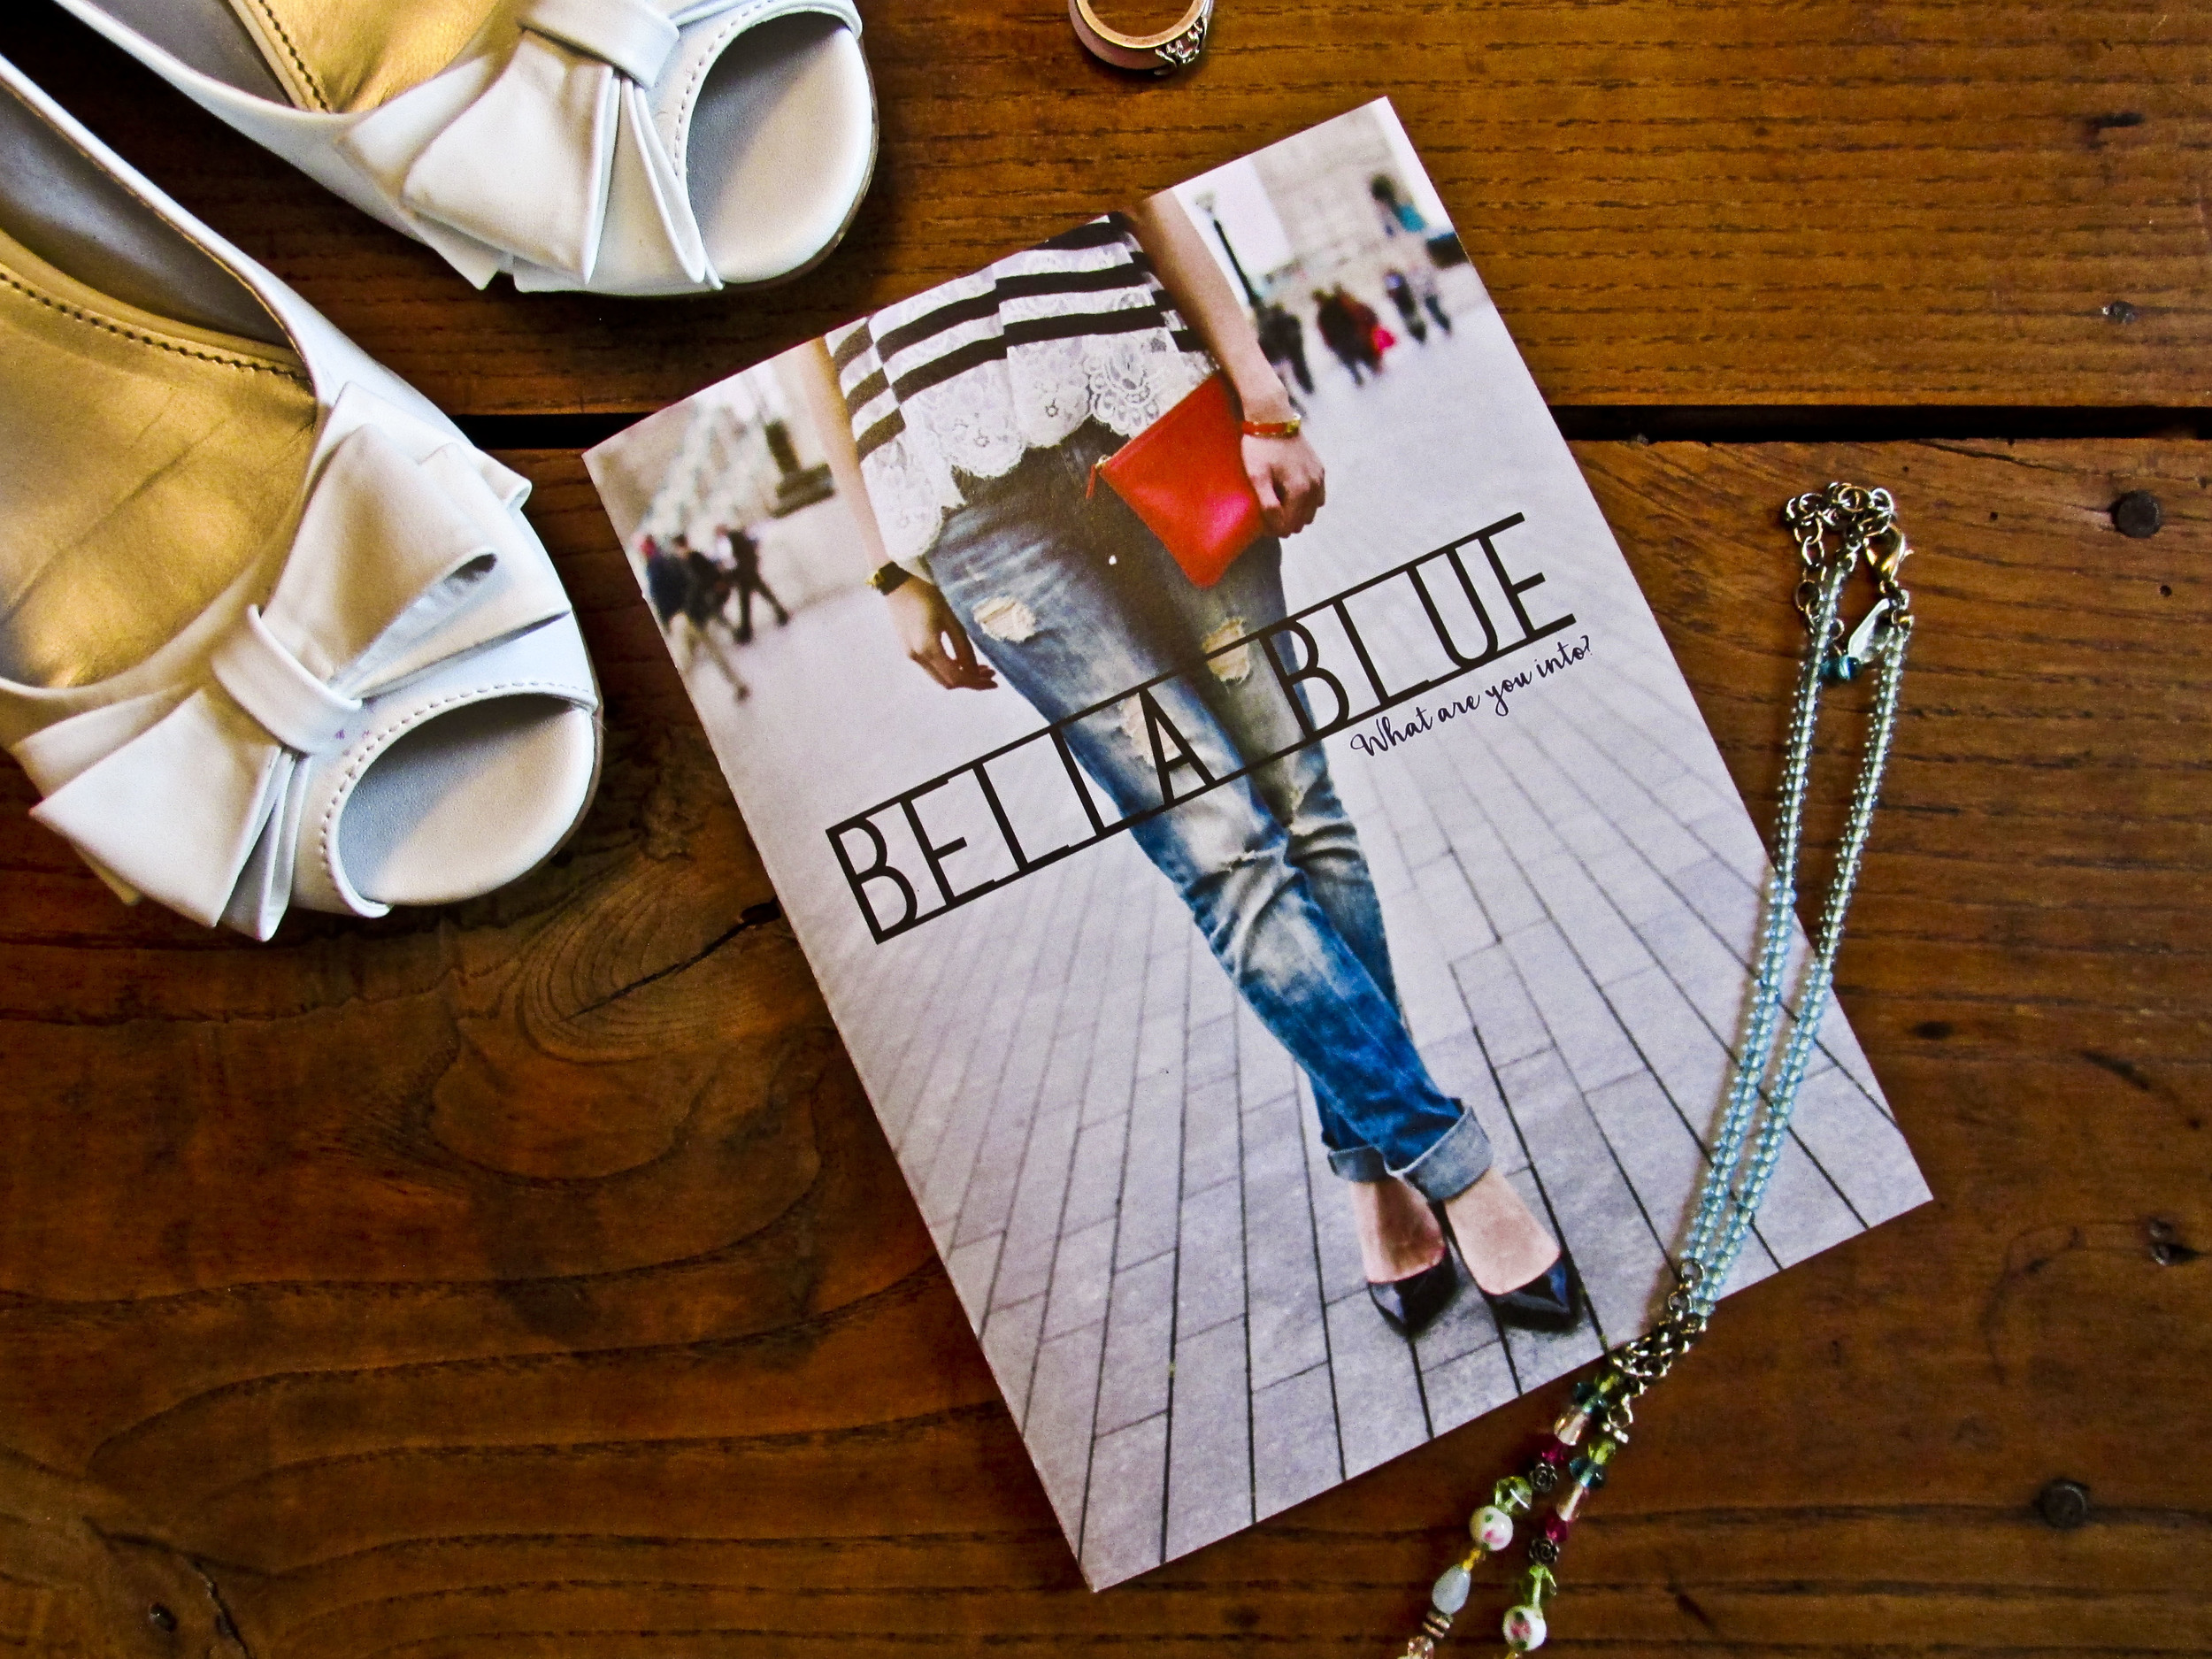 Bella Blue Brochure